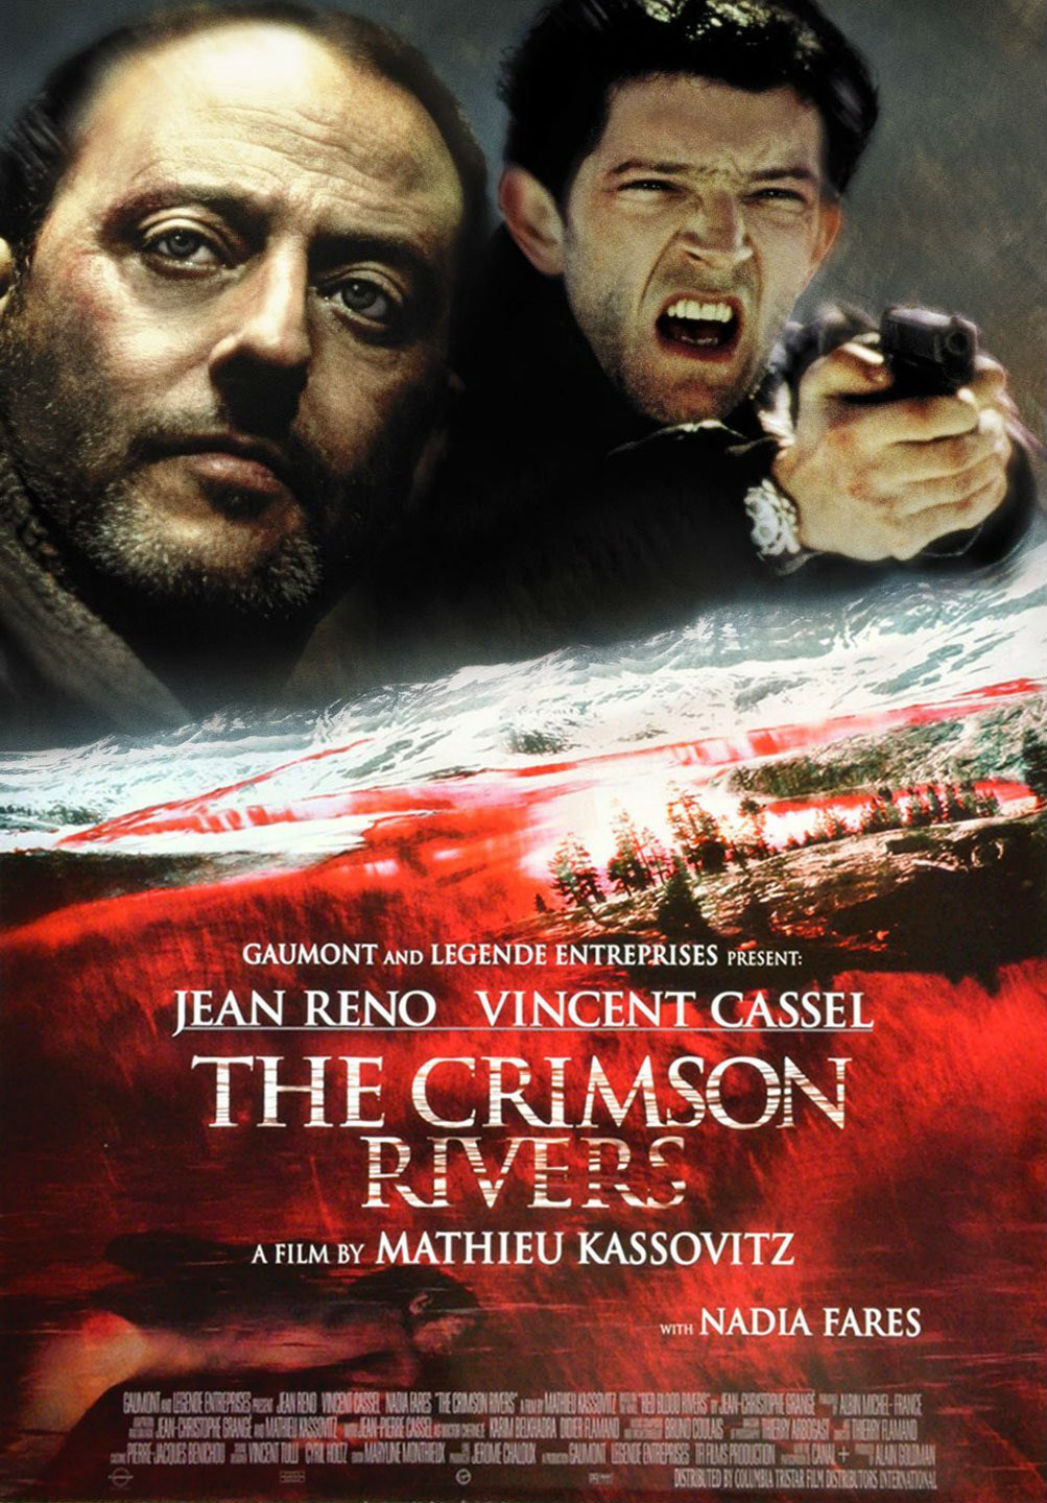 Crimson Rivers Film Poster